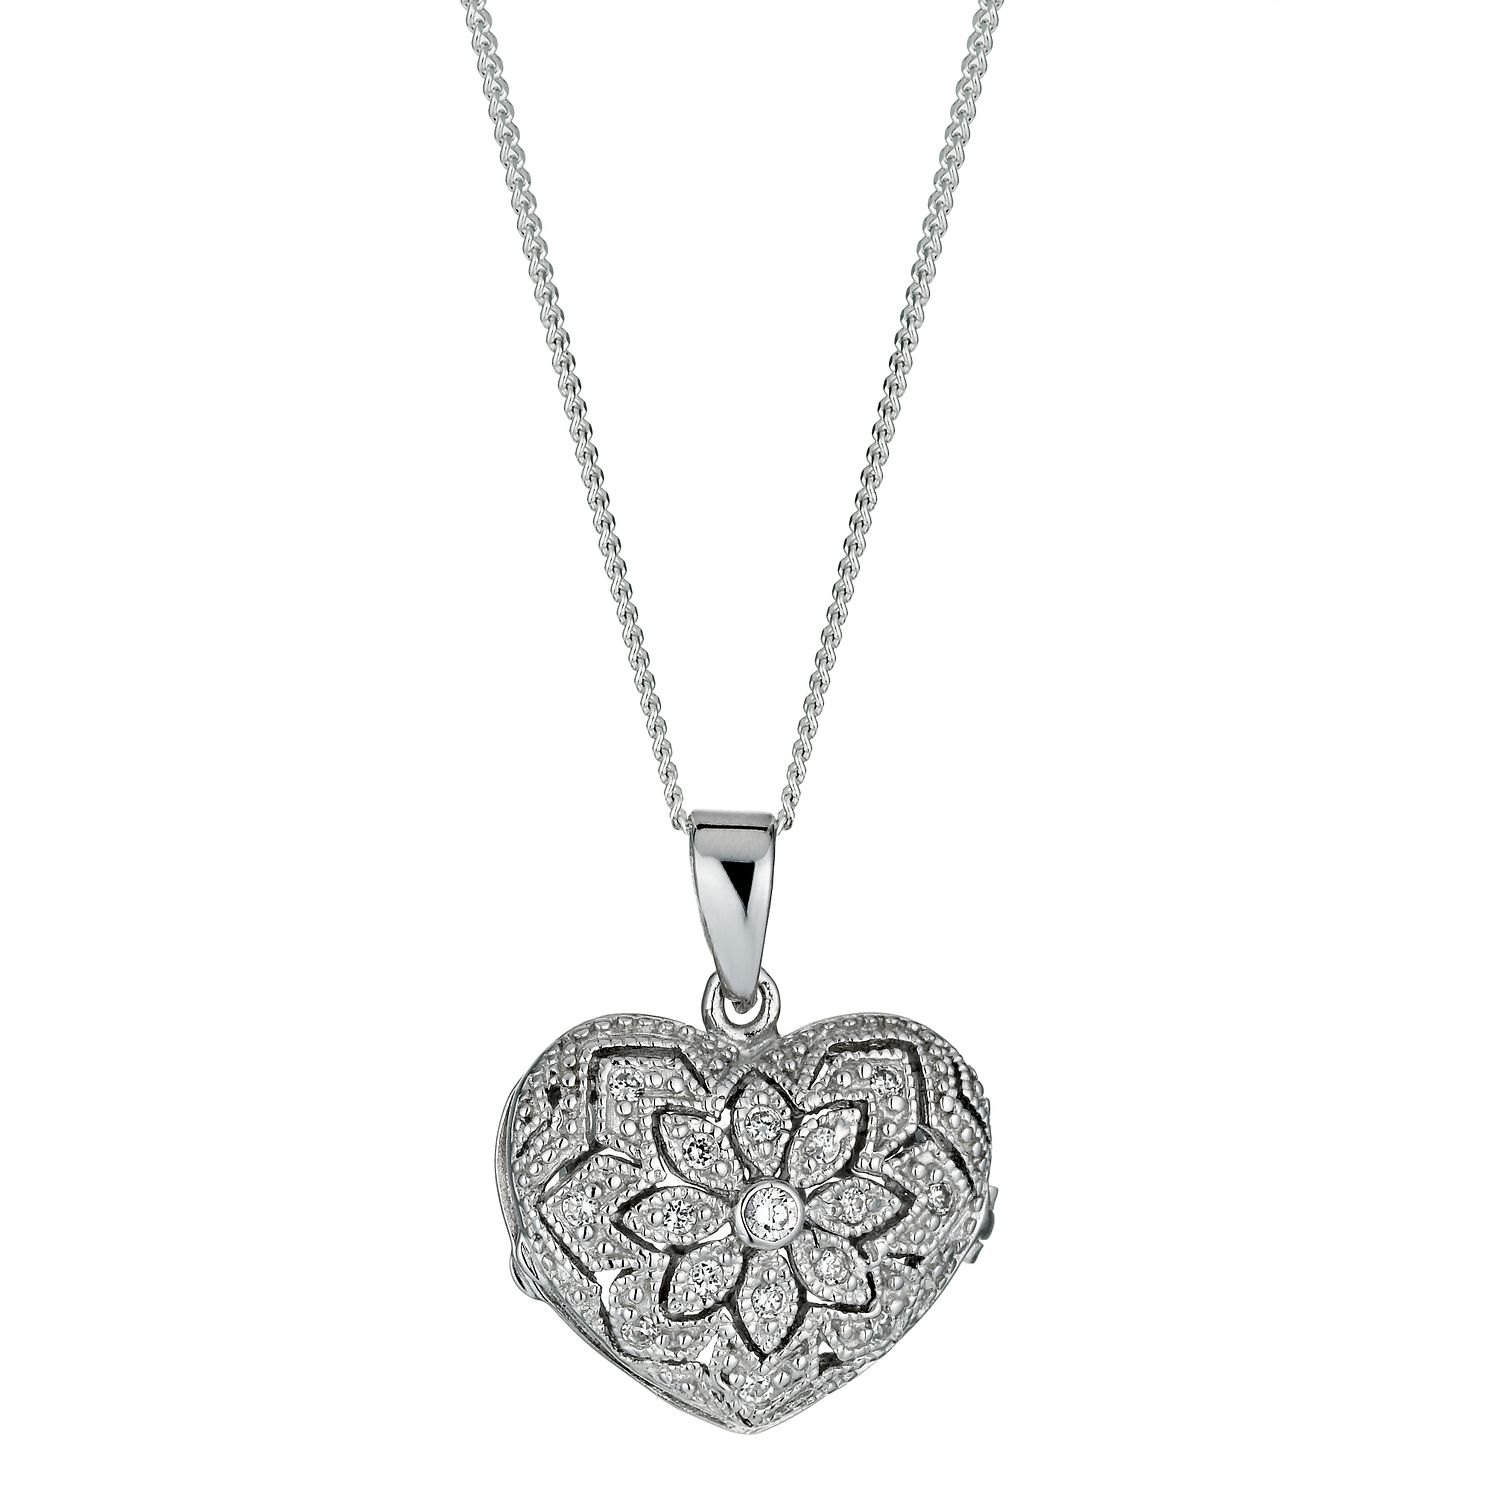 pendant locket necklace unbranded pinterest heart best new unique jewelry on fashion lockets silver sweet images sterling